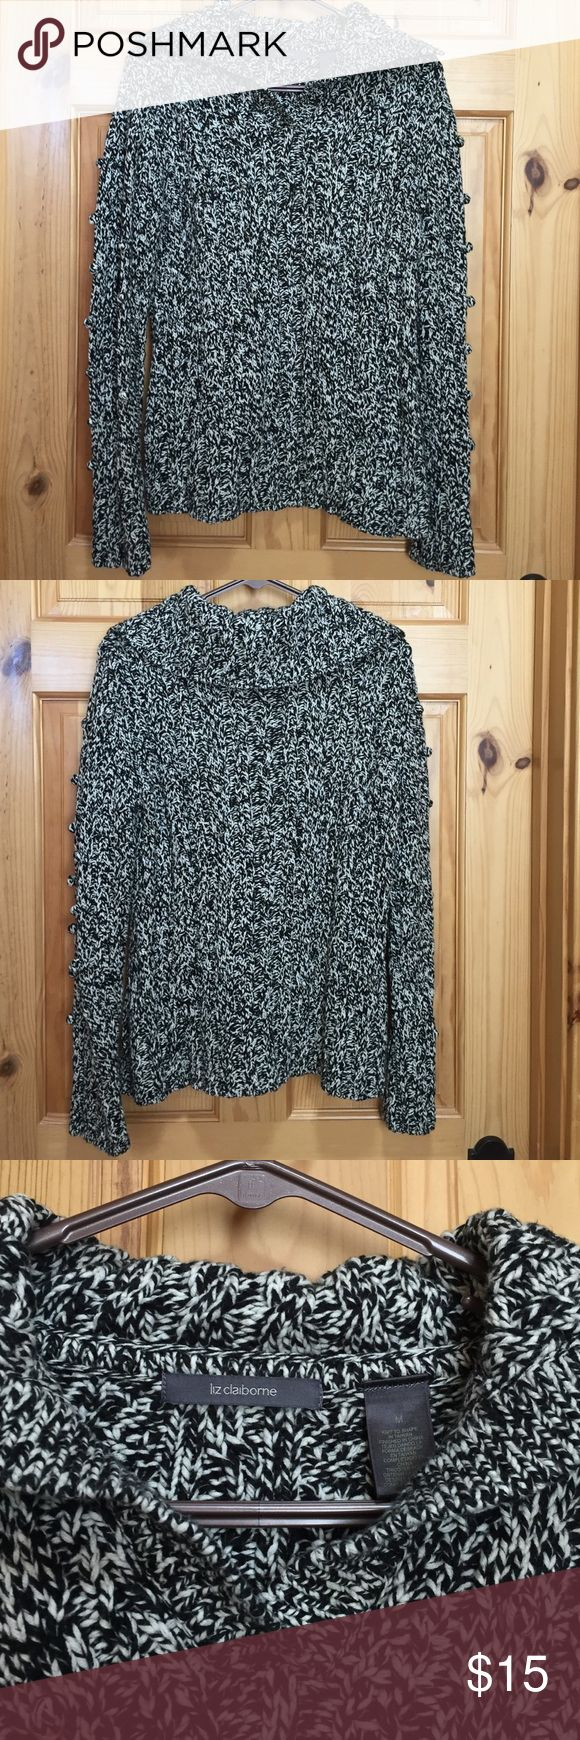 Liz Claiborne sweater Very fun  and beautiful Liz Claiborne sweater with small pom  pom embellishments Liz Claiborne Sweaters V-Necks